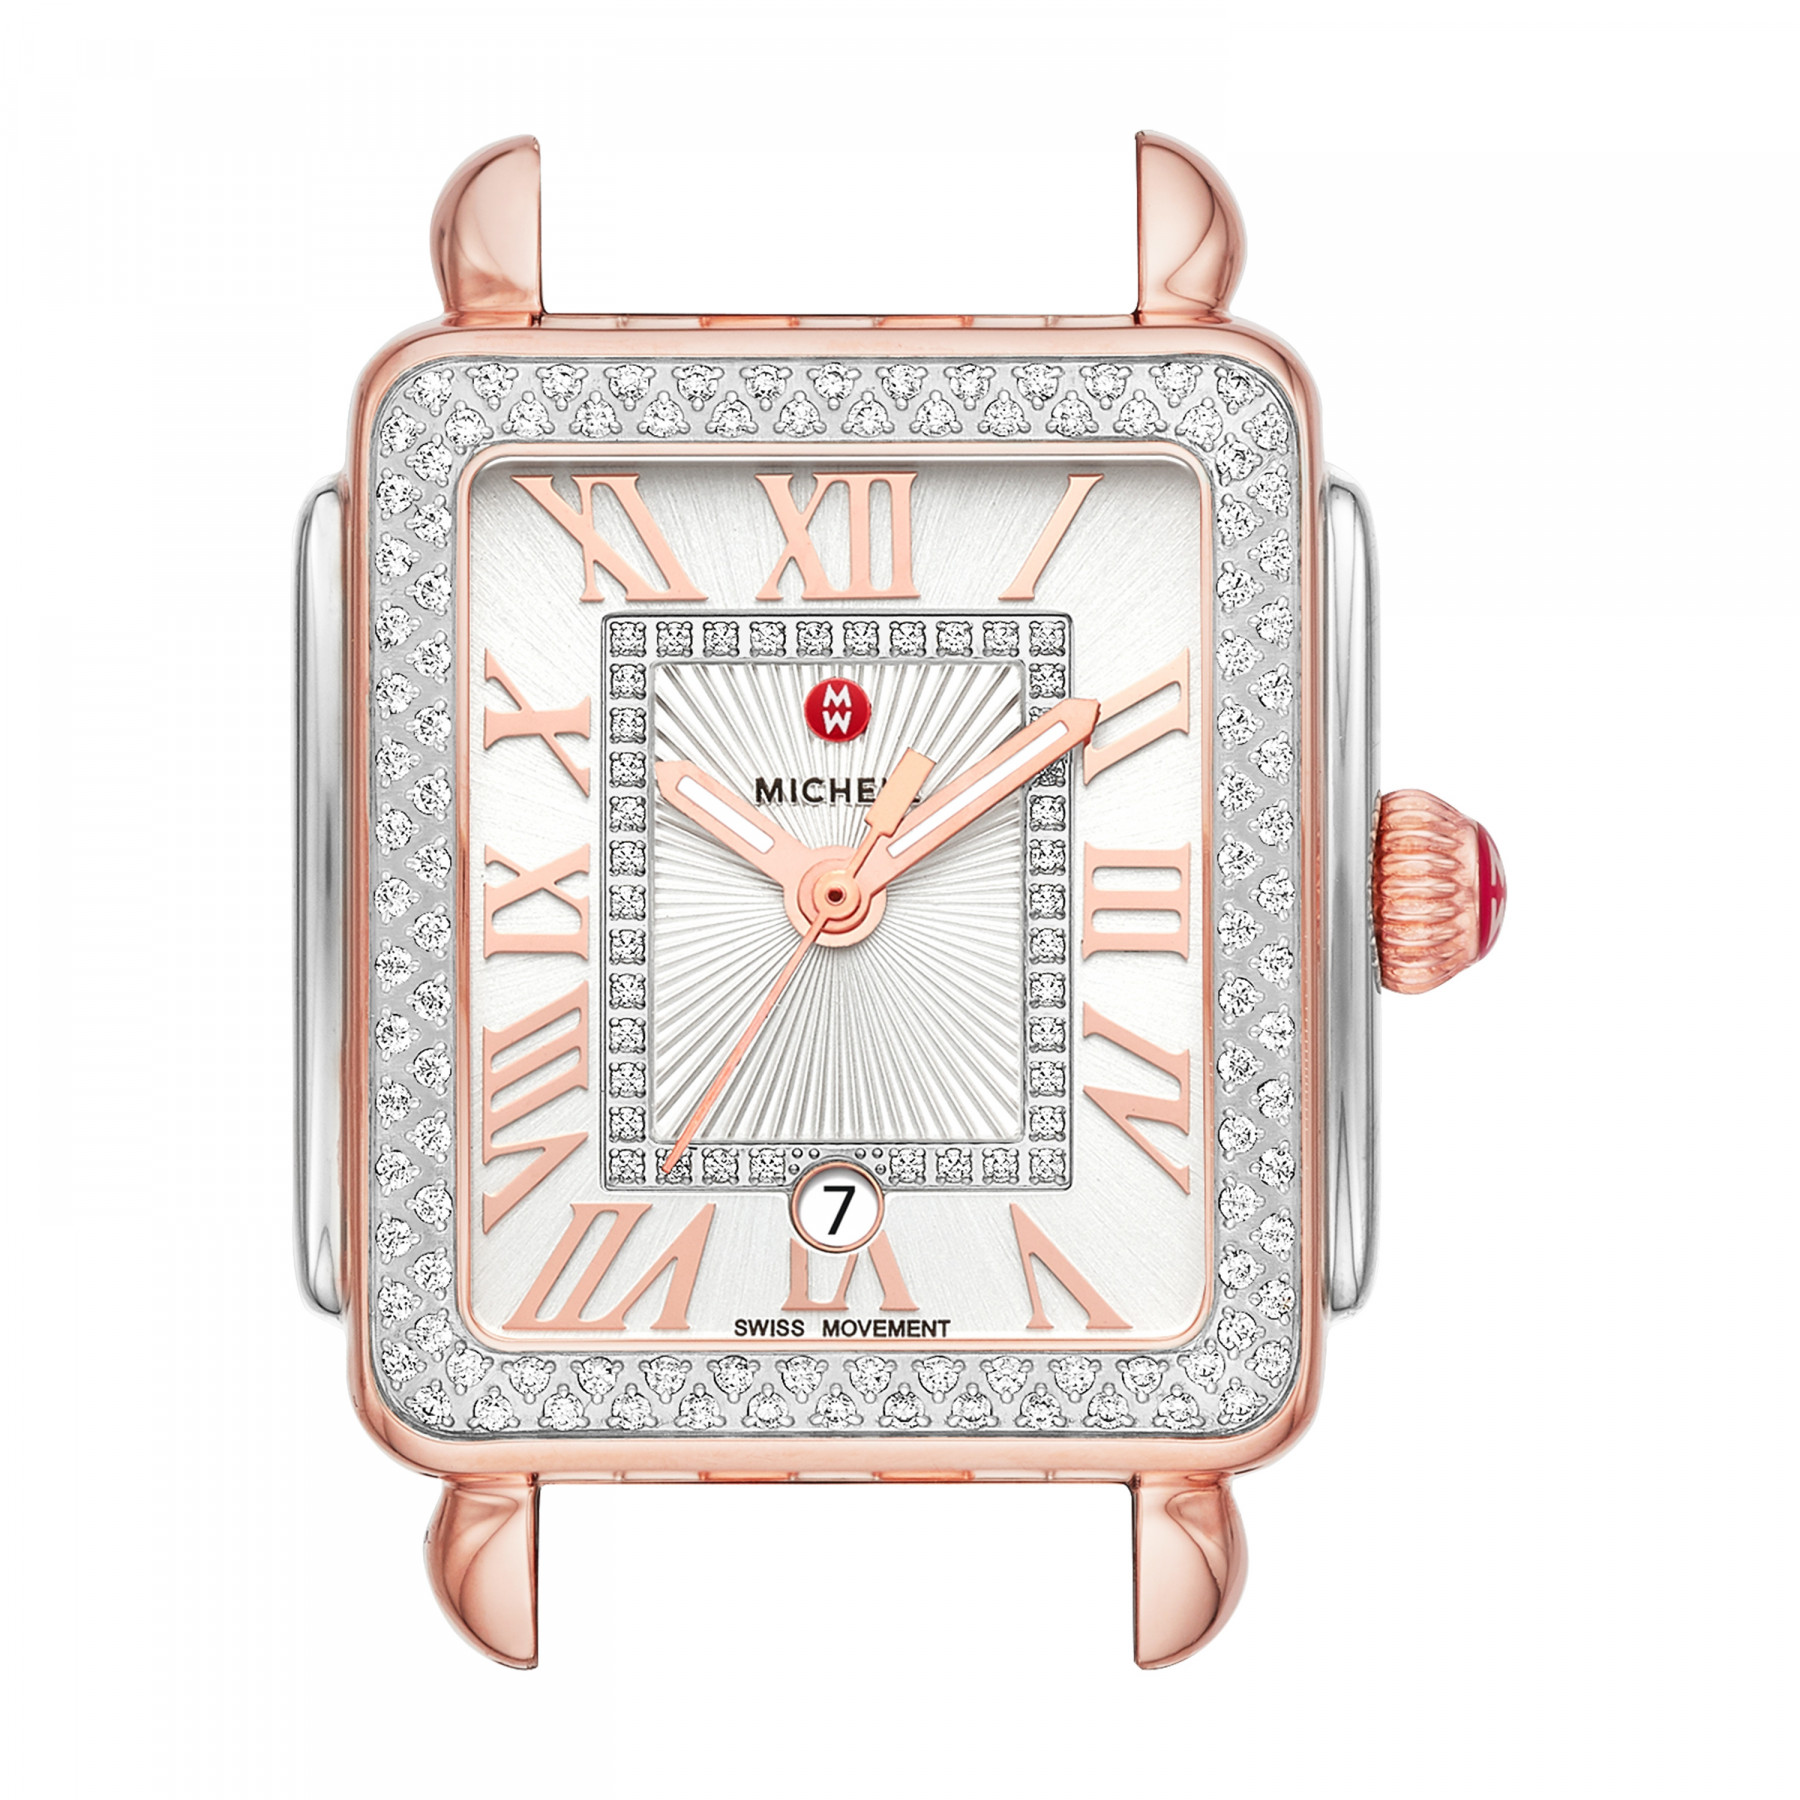 Michele Deco Madison Mid Diamond Dial Watch in Pink Gold and Steel face view